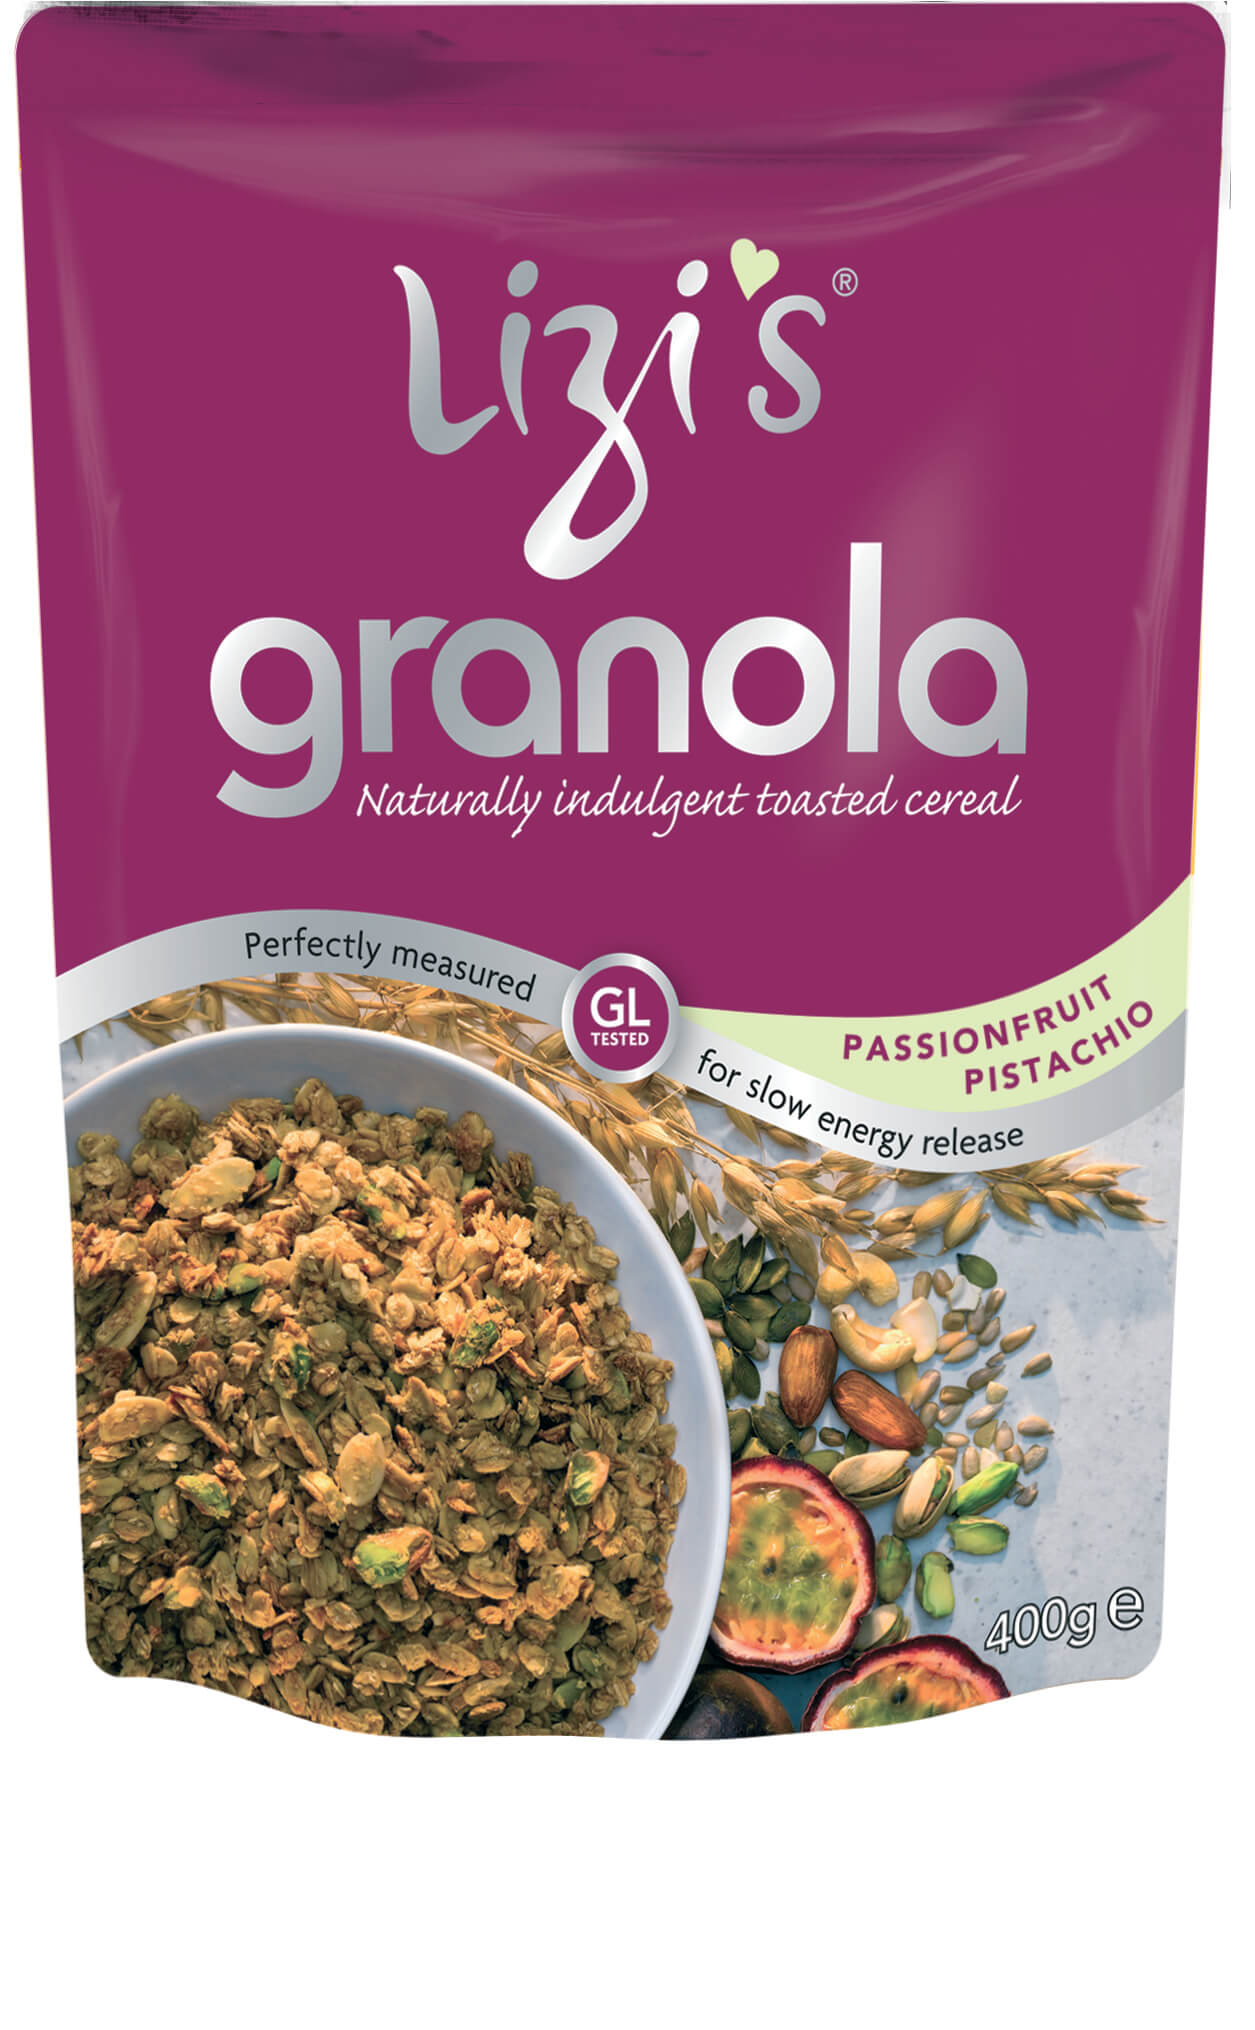 Top 5: Quirky Granola in London